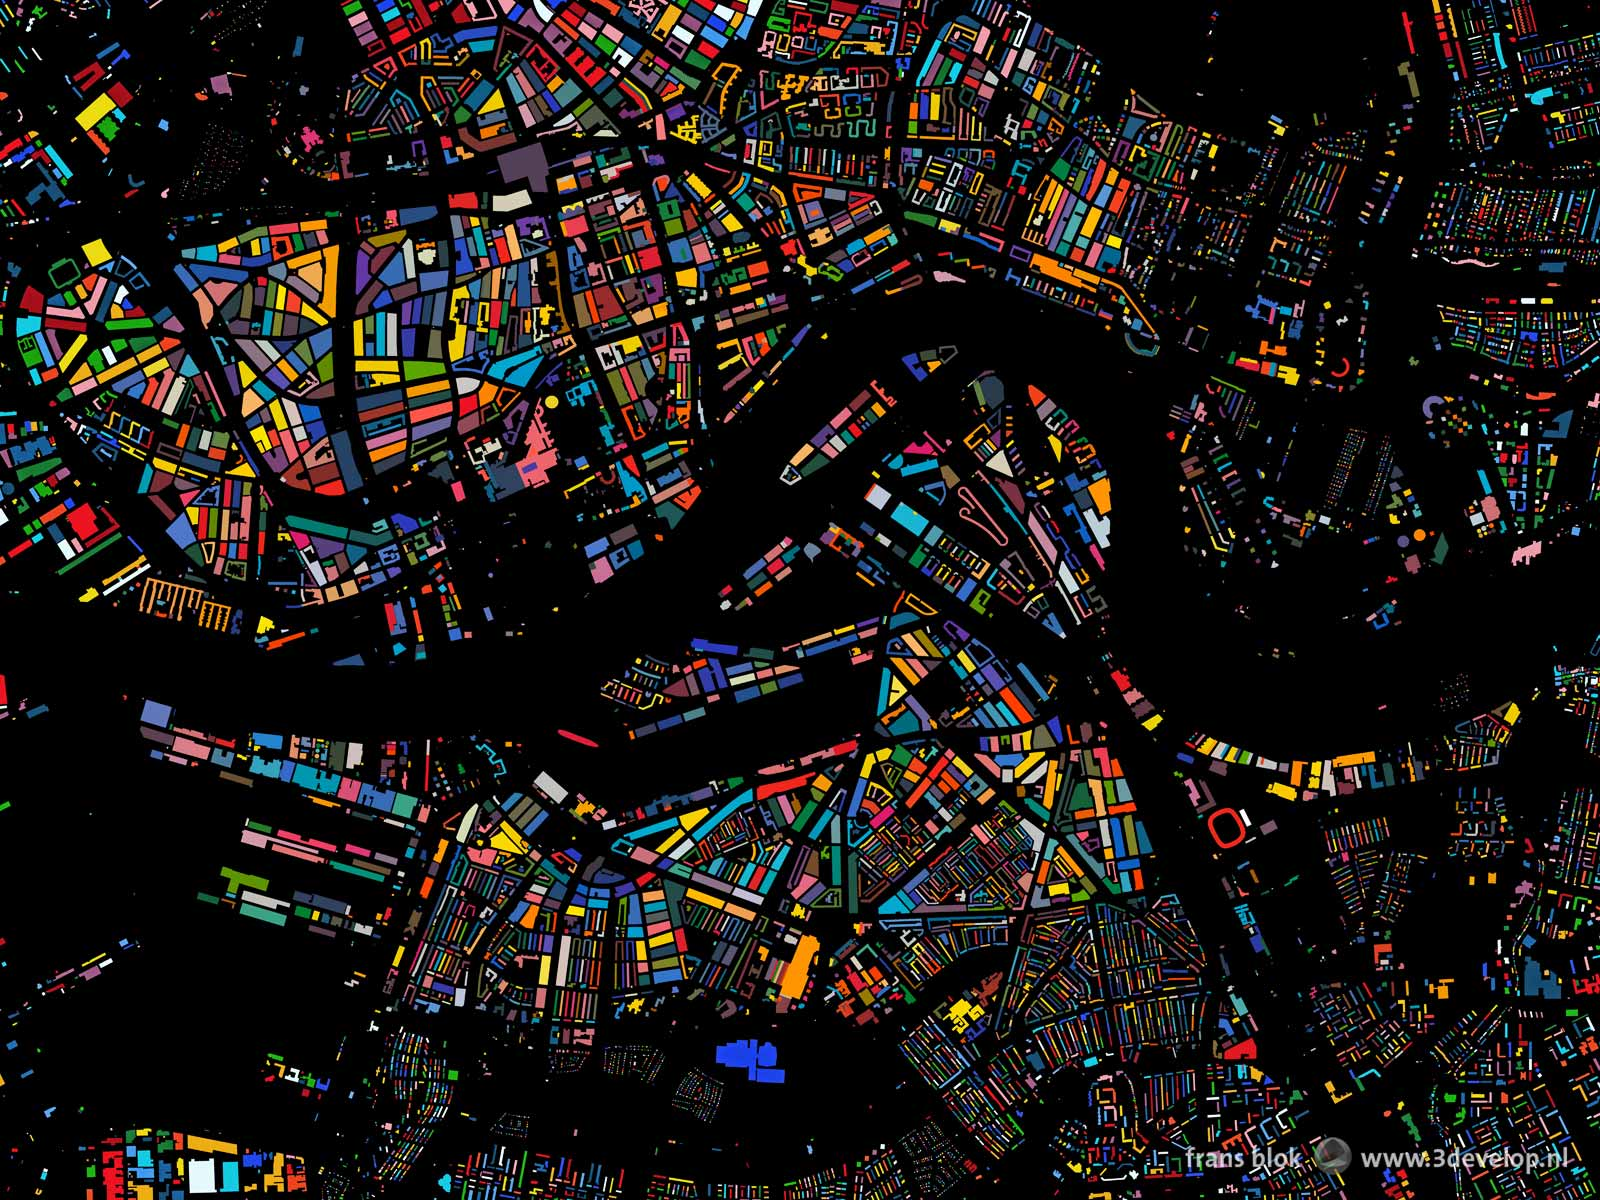 The Color Map of Rotterdam, a plan of the city center and its surroundings with all city blocks drawn in a random color aganst a black background.